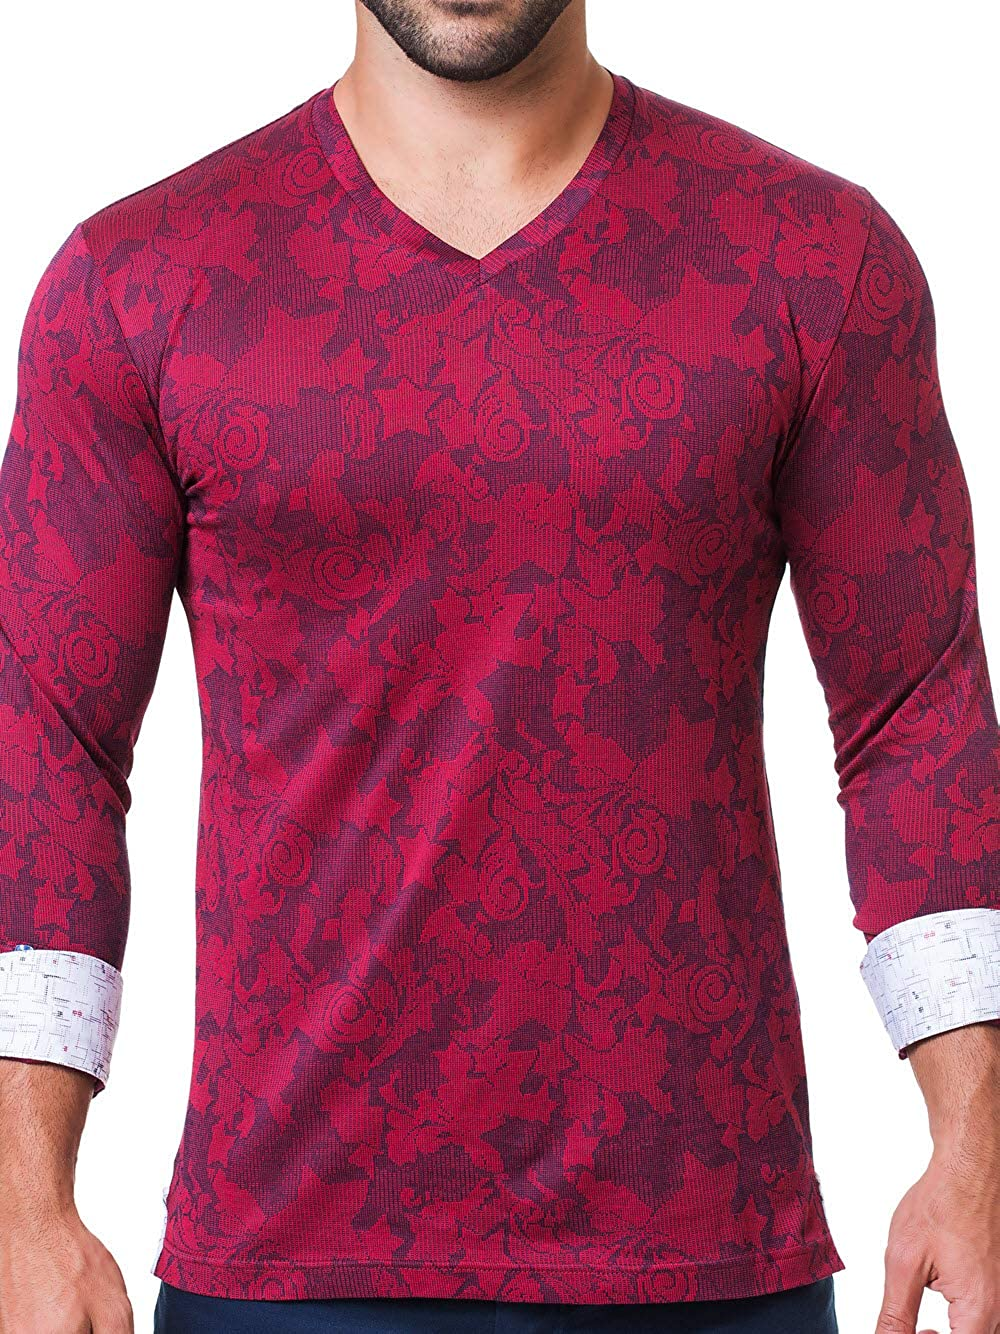 b9db5071480c Maceoo Mens Designer V Neck - Stylish & Trendy T Shirt - Edison Cloud Red -  Tailored Fit at Amazon Men's Clothing store: